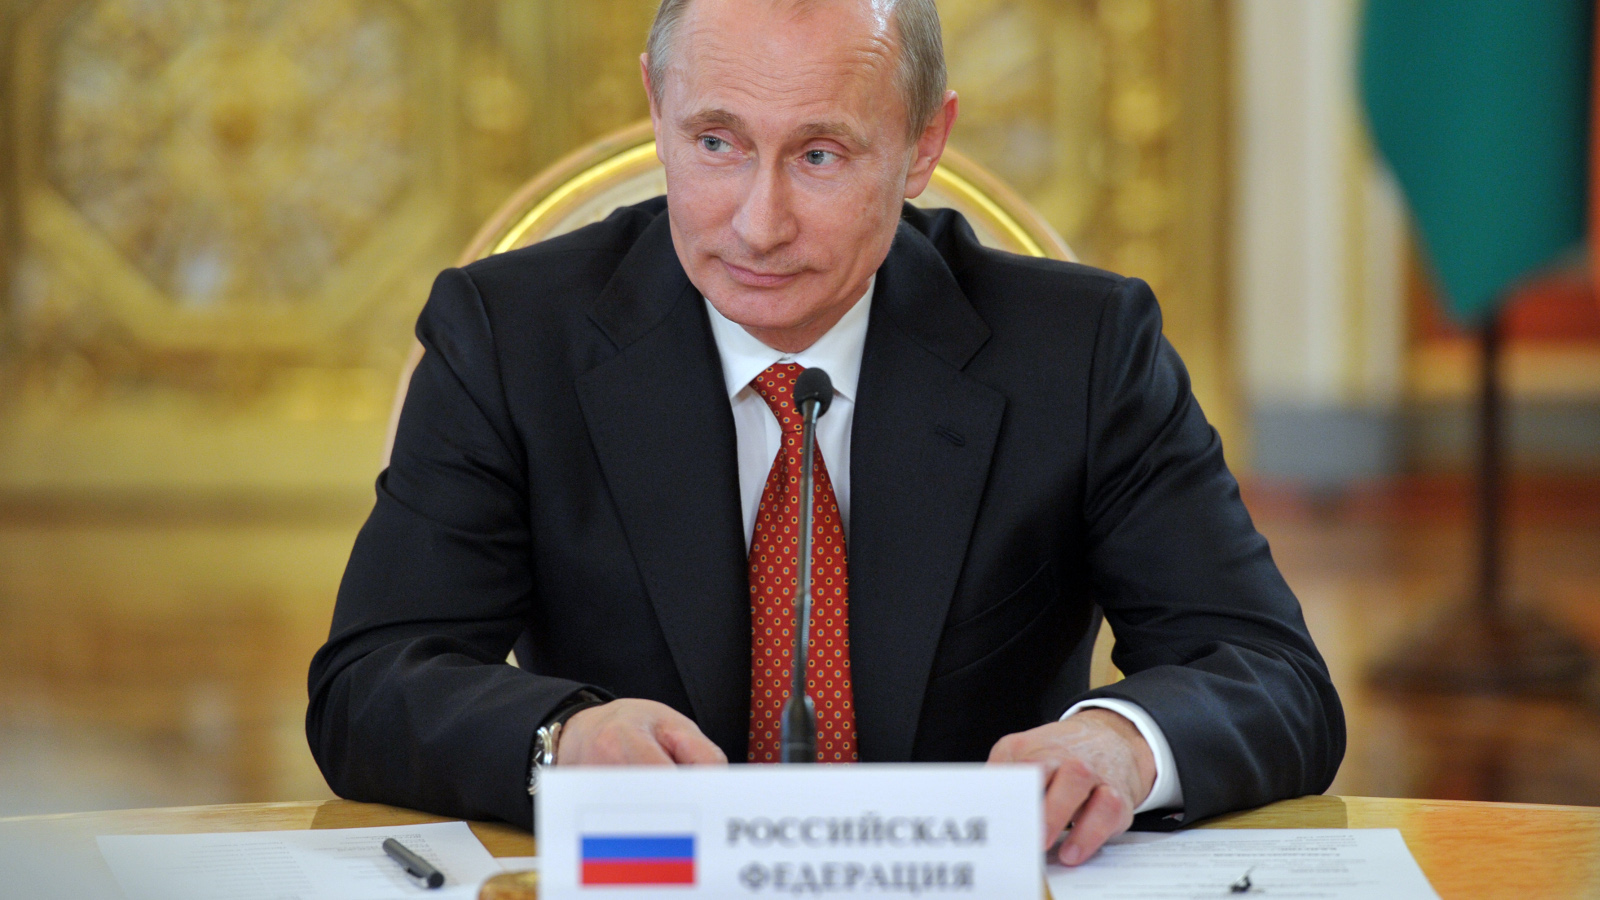 Vladimir Putin, the president of Russia